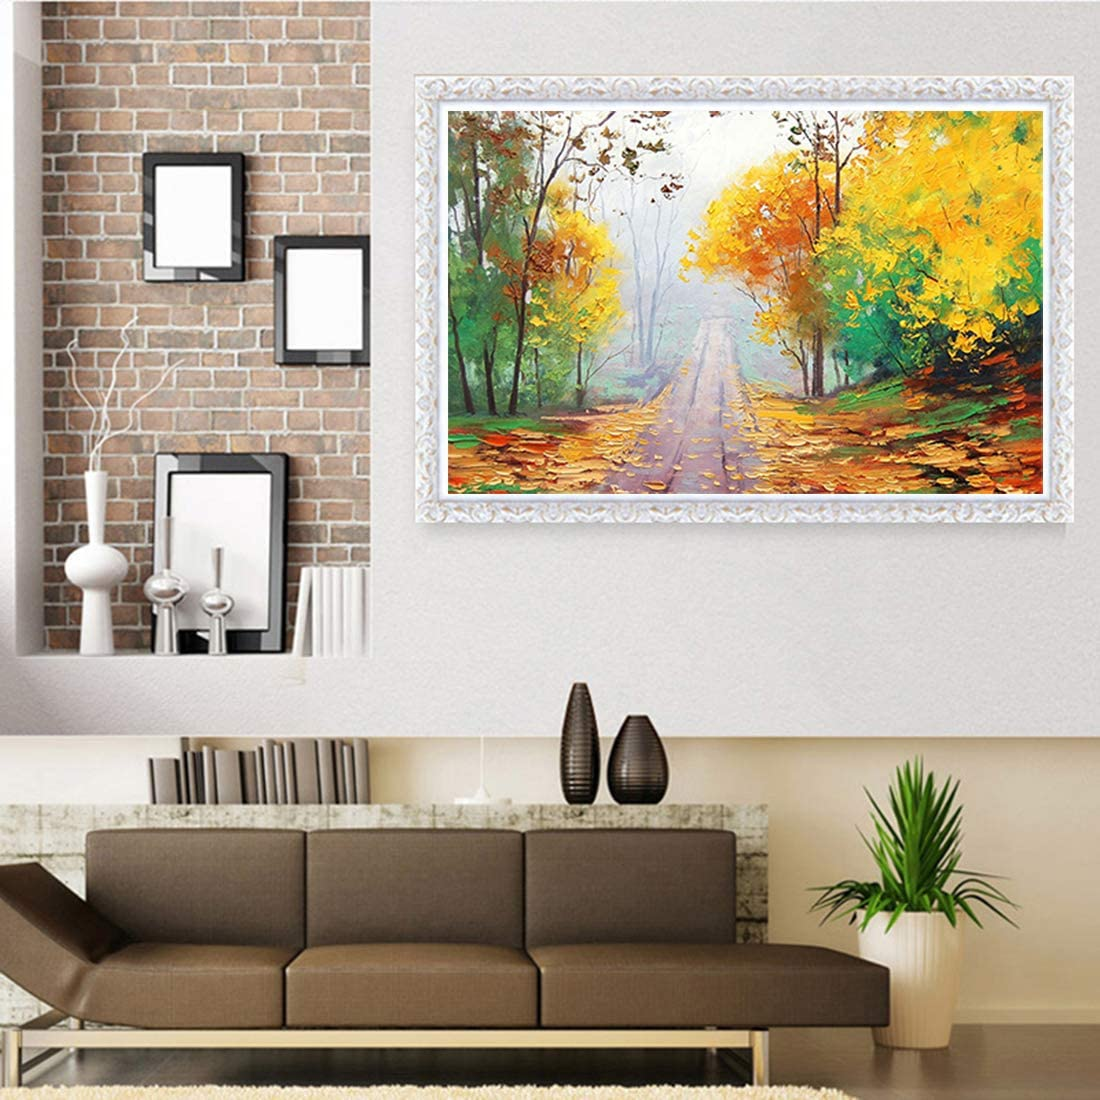 5D DIY Diamond Painting Kits for Adults with Round Full Drill Gem Art Crafts for Home Wall Decor 12x16inch//30x40cm